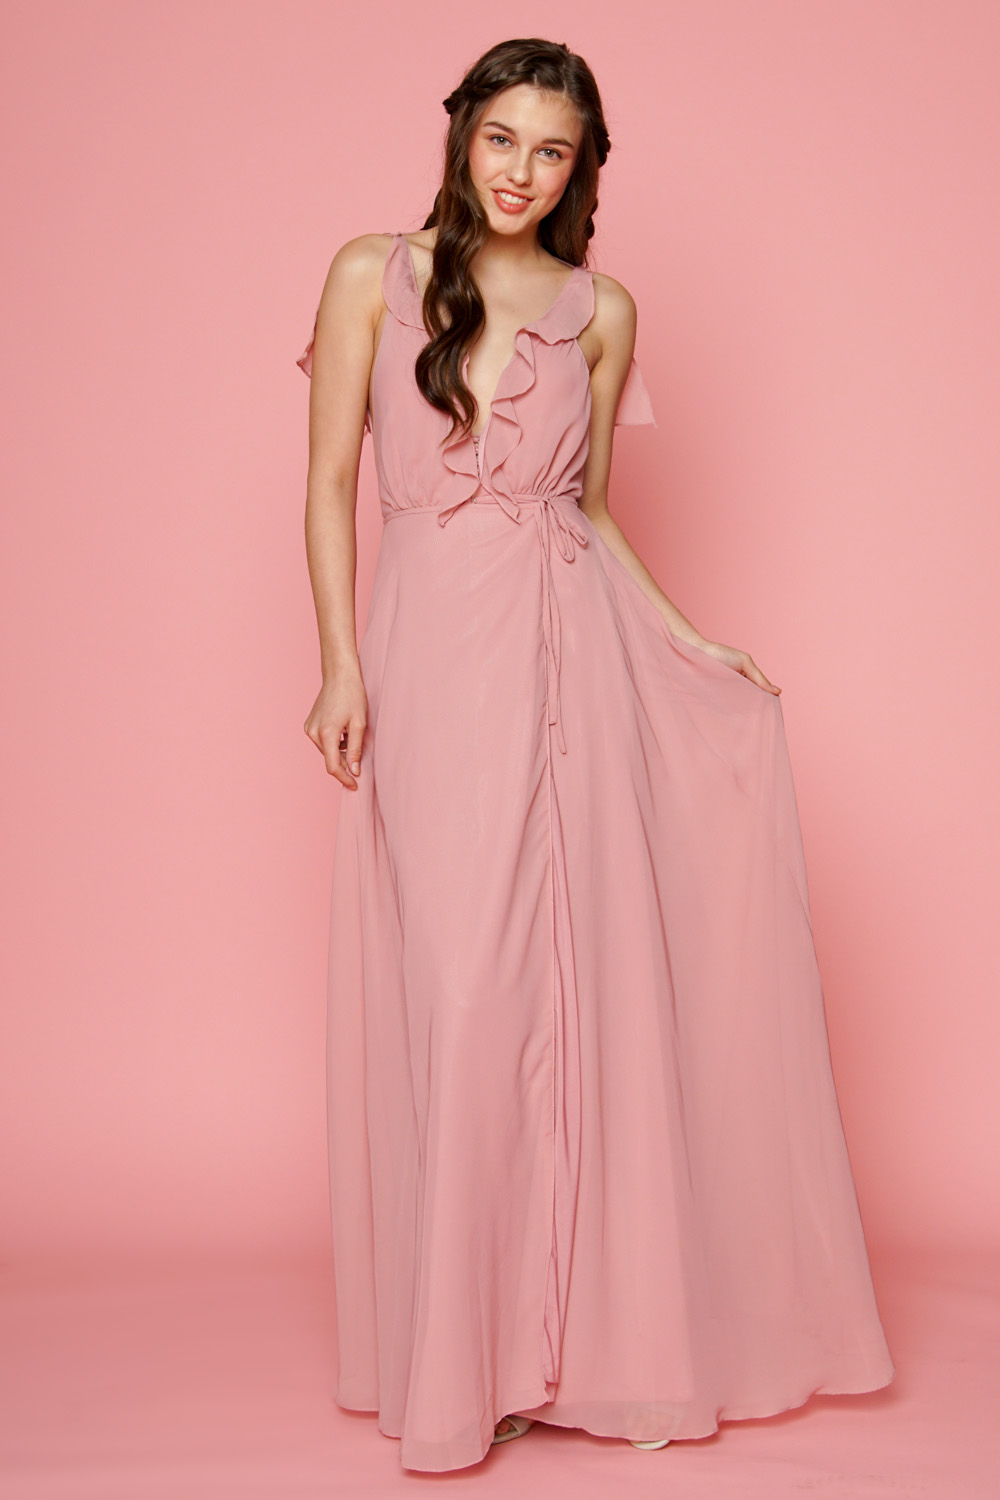 Zoo Fashion Online Florence Ruffle Chiffon Maxi Dress With Wrap